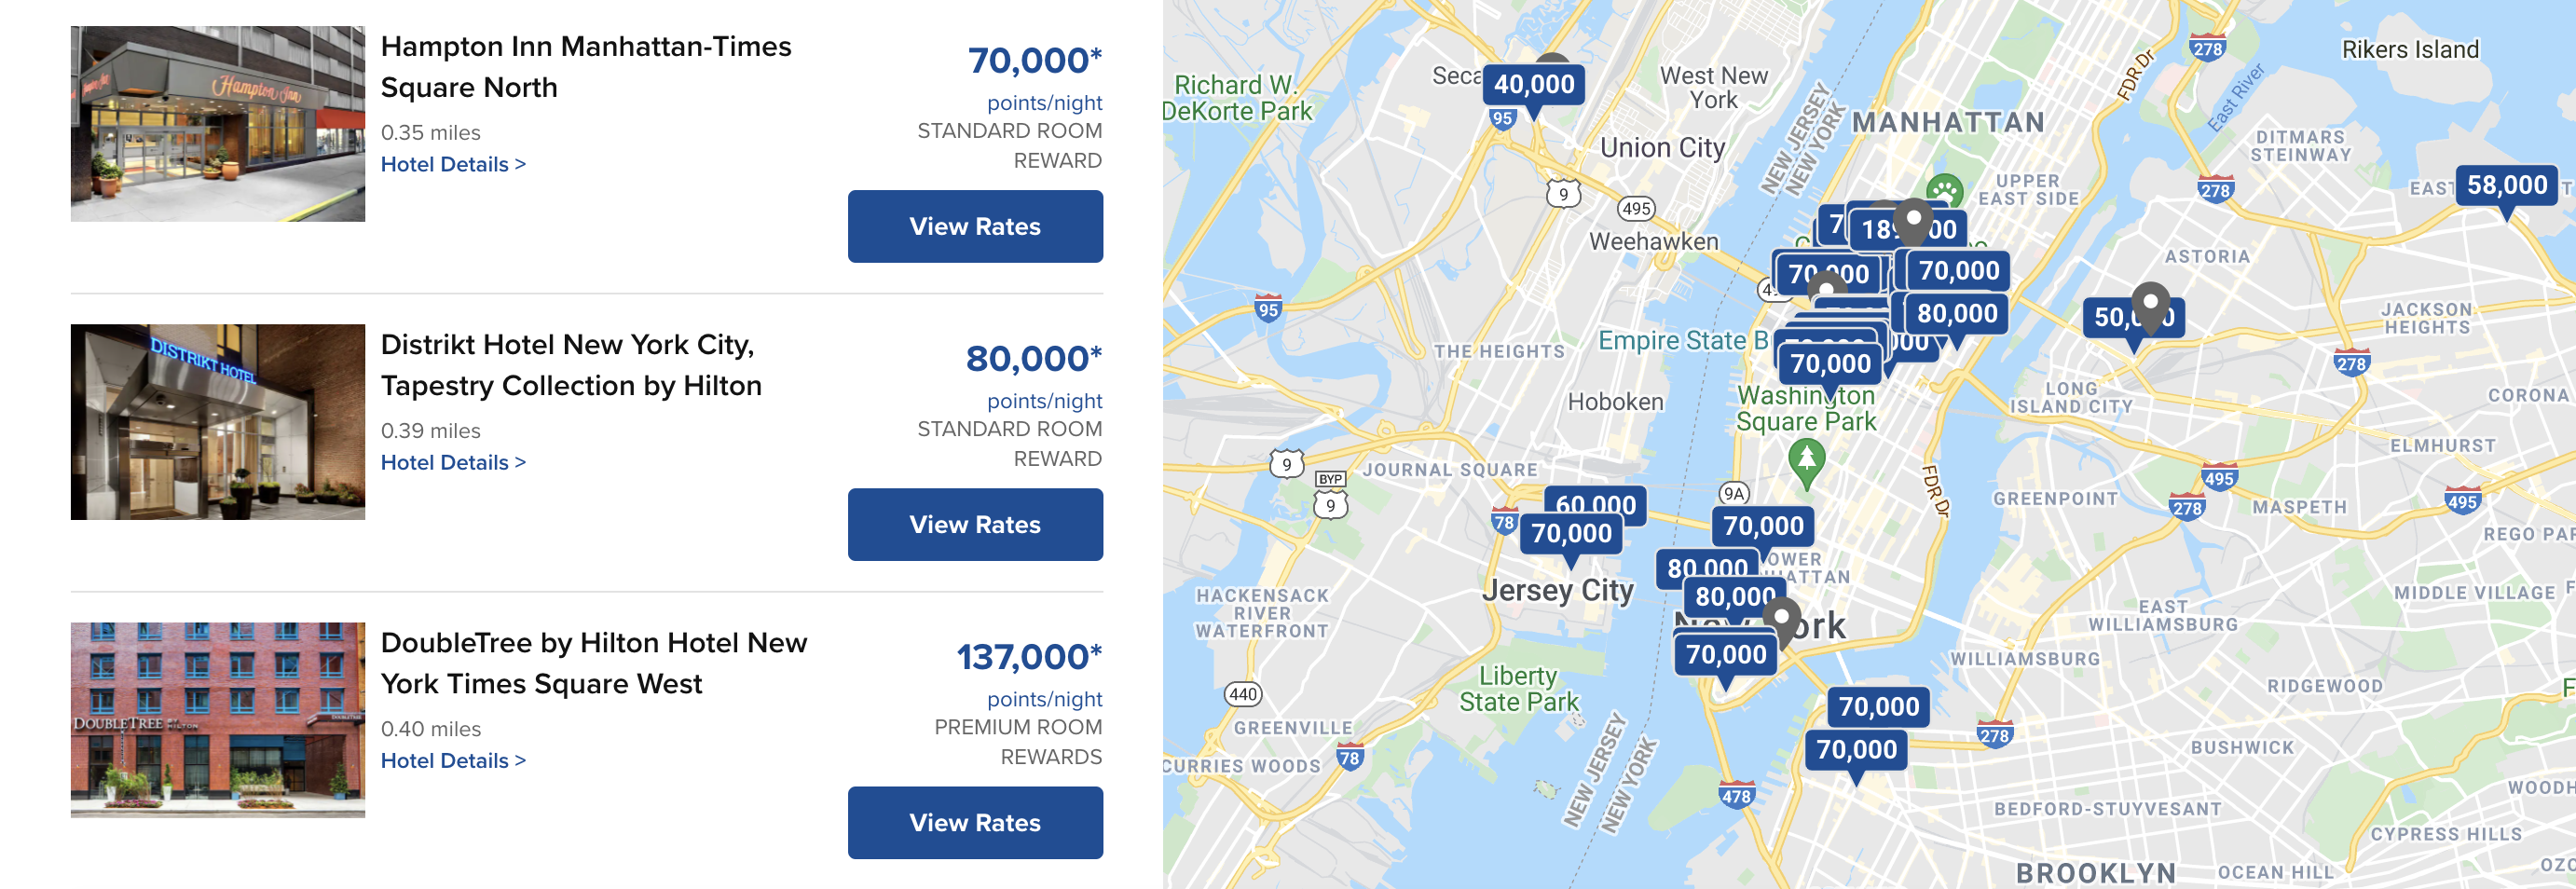 Search results with Hilton Honors in New York City over New Year's weekend